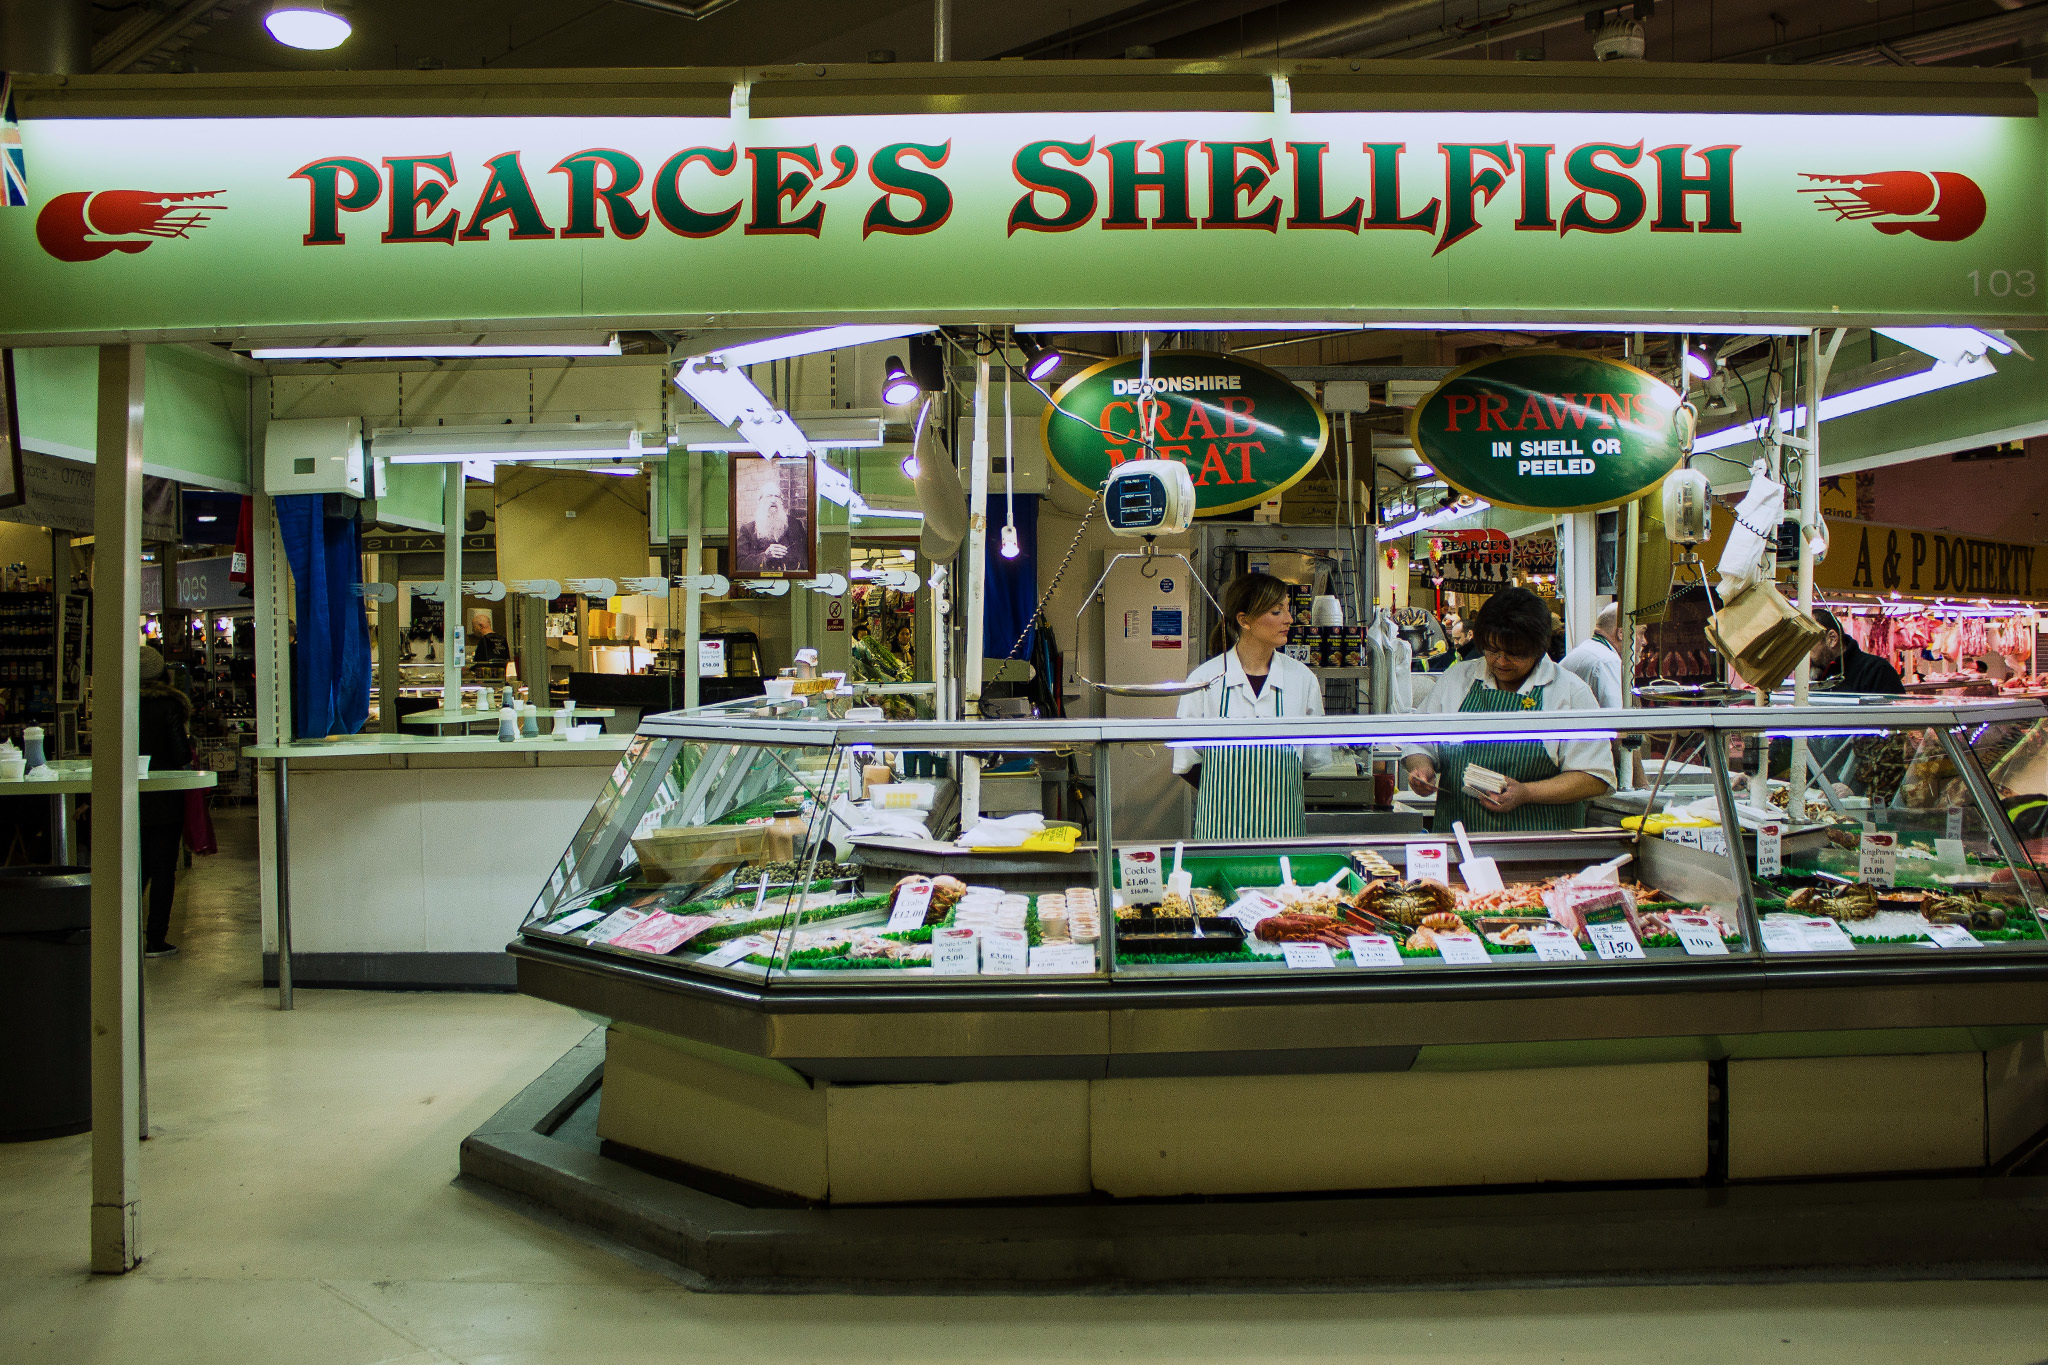 pearce's shellfish, cheap eats